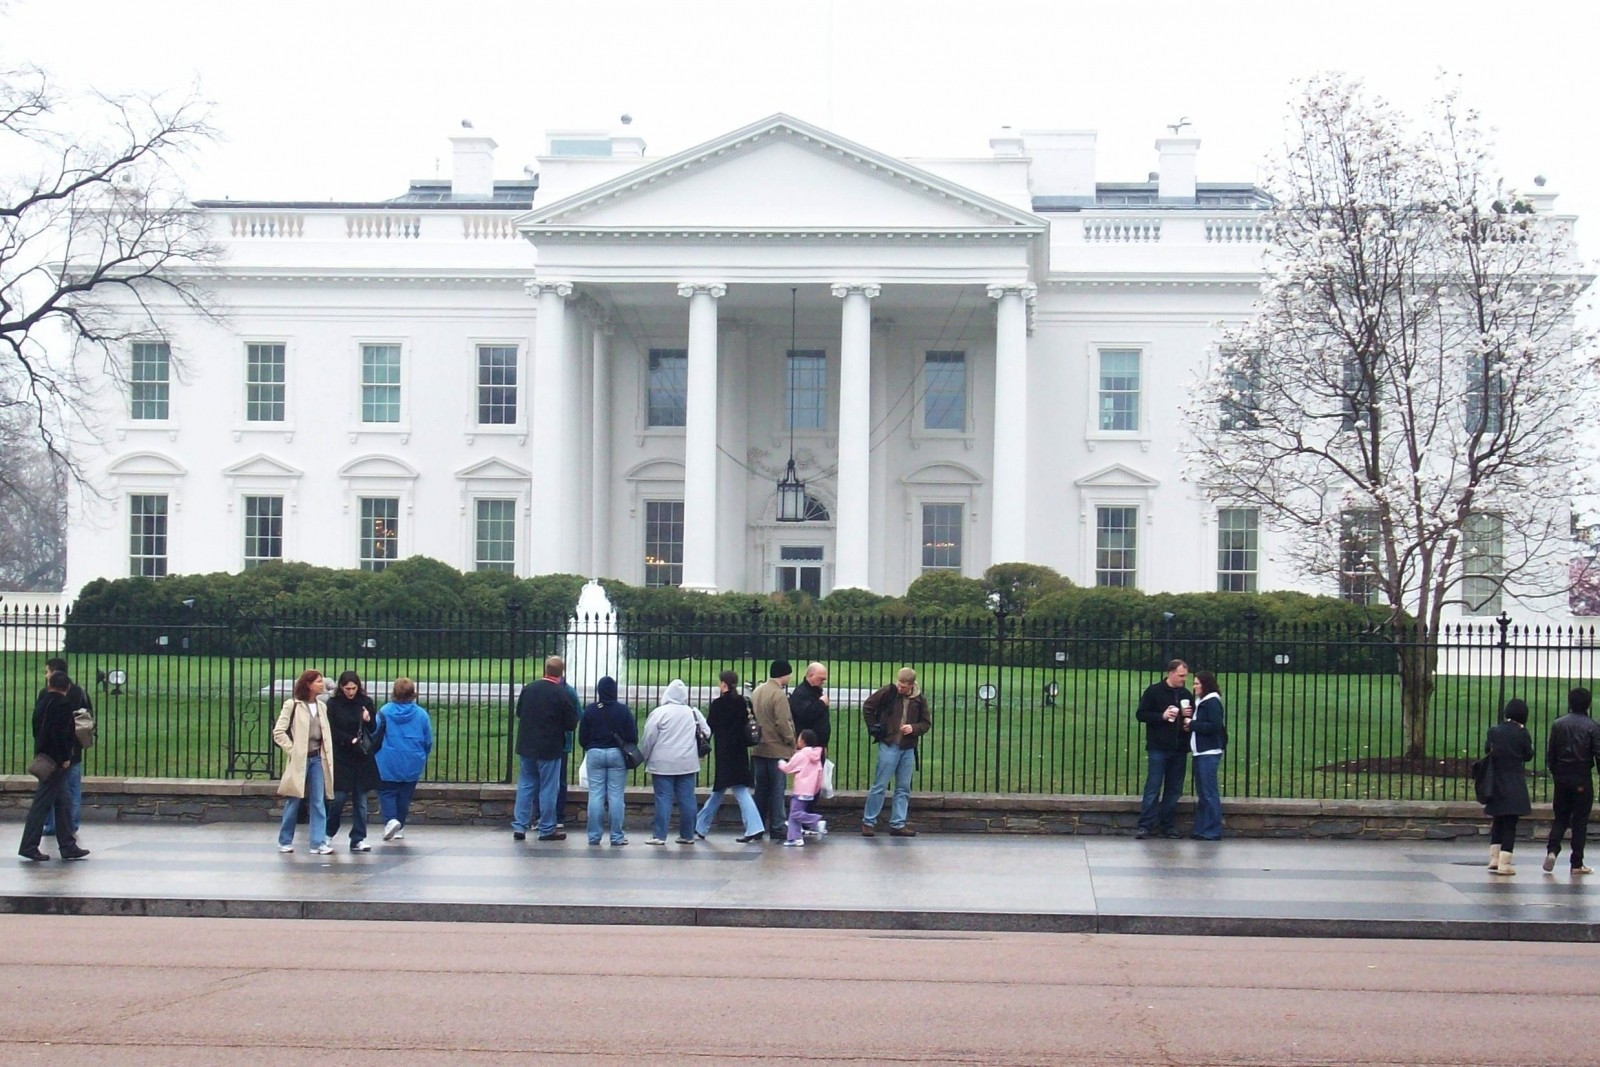 the White House - 1600 Pennsylvania Avenue Washington, DC